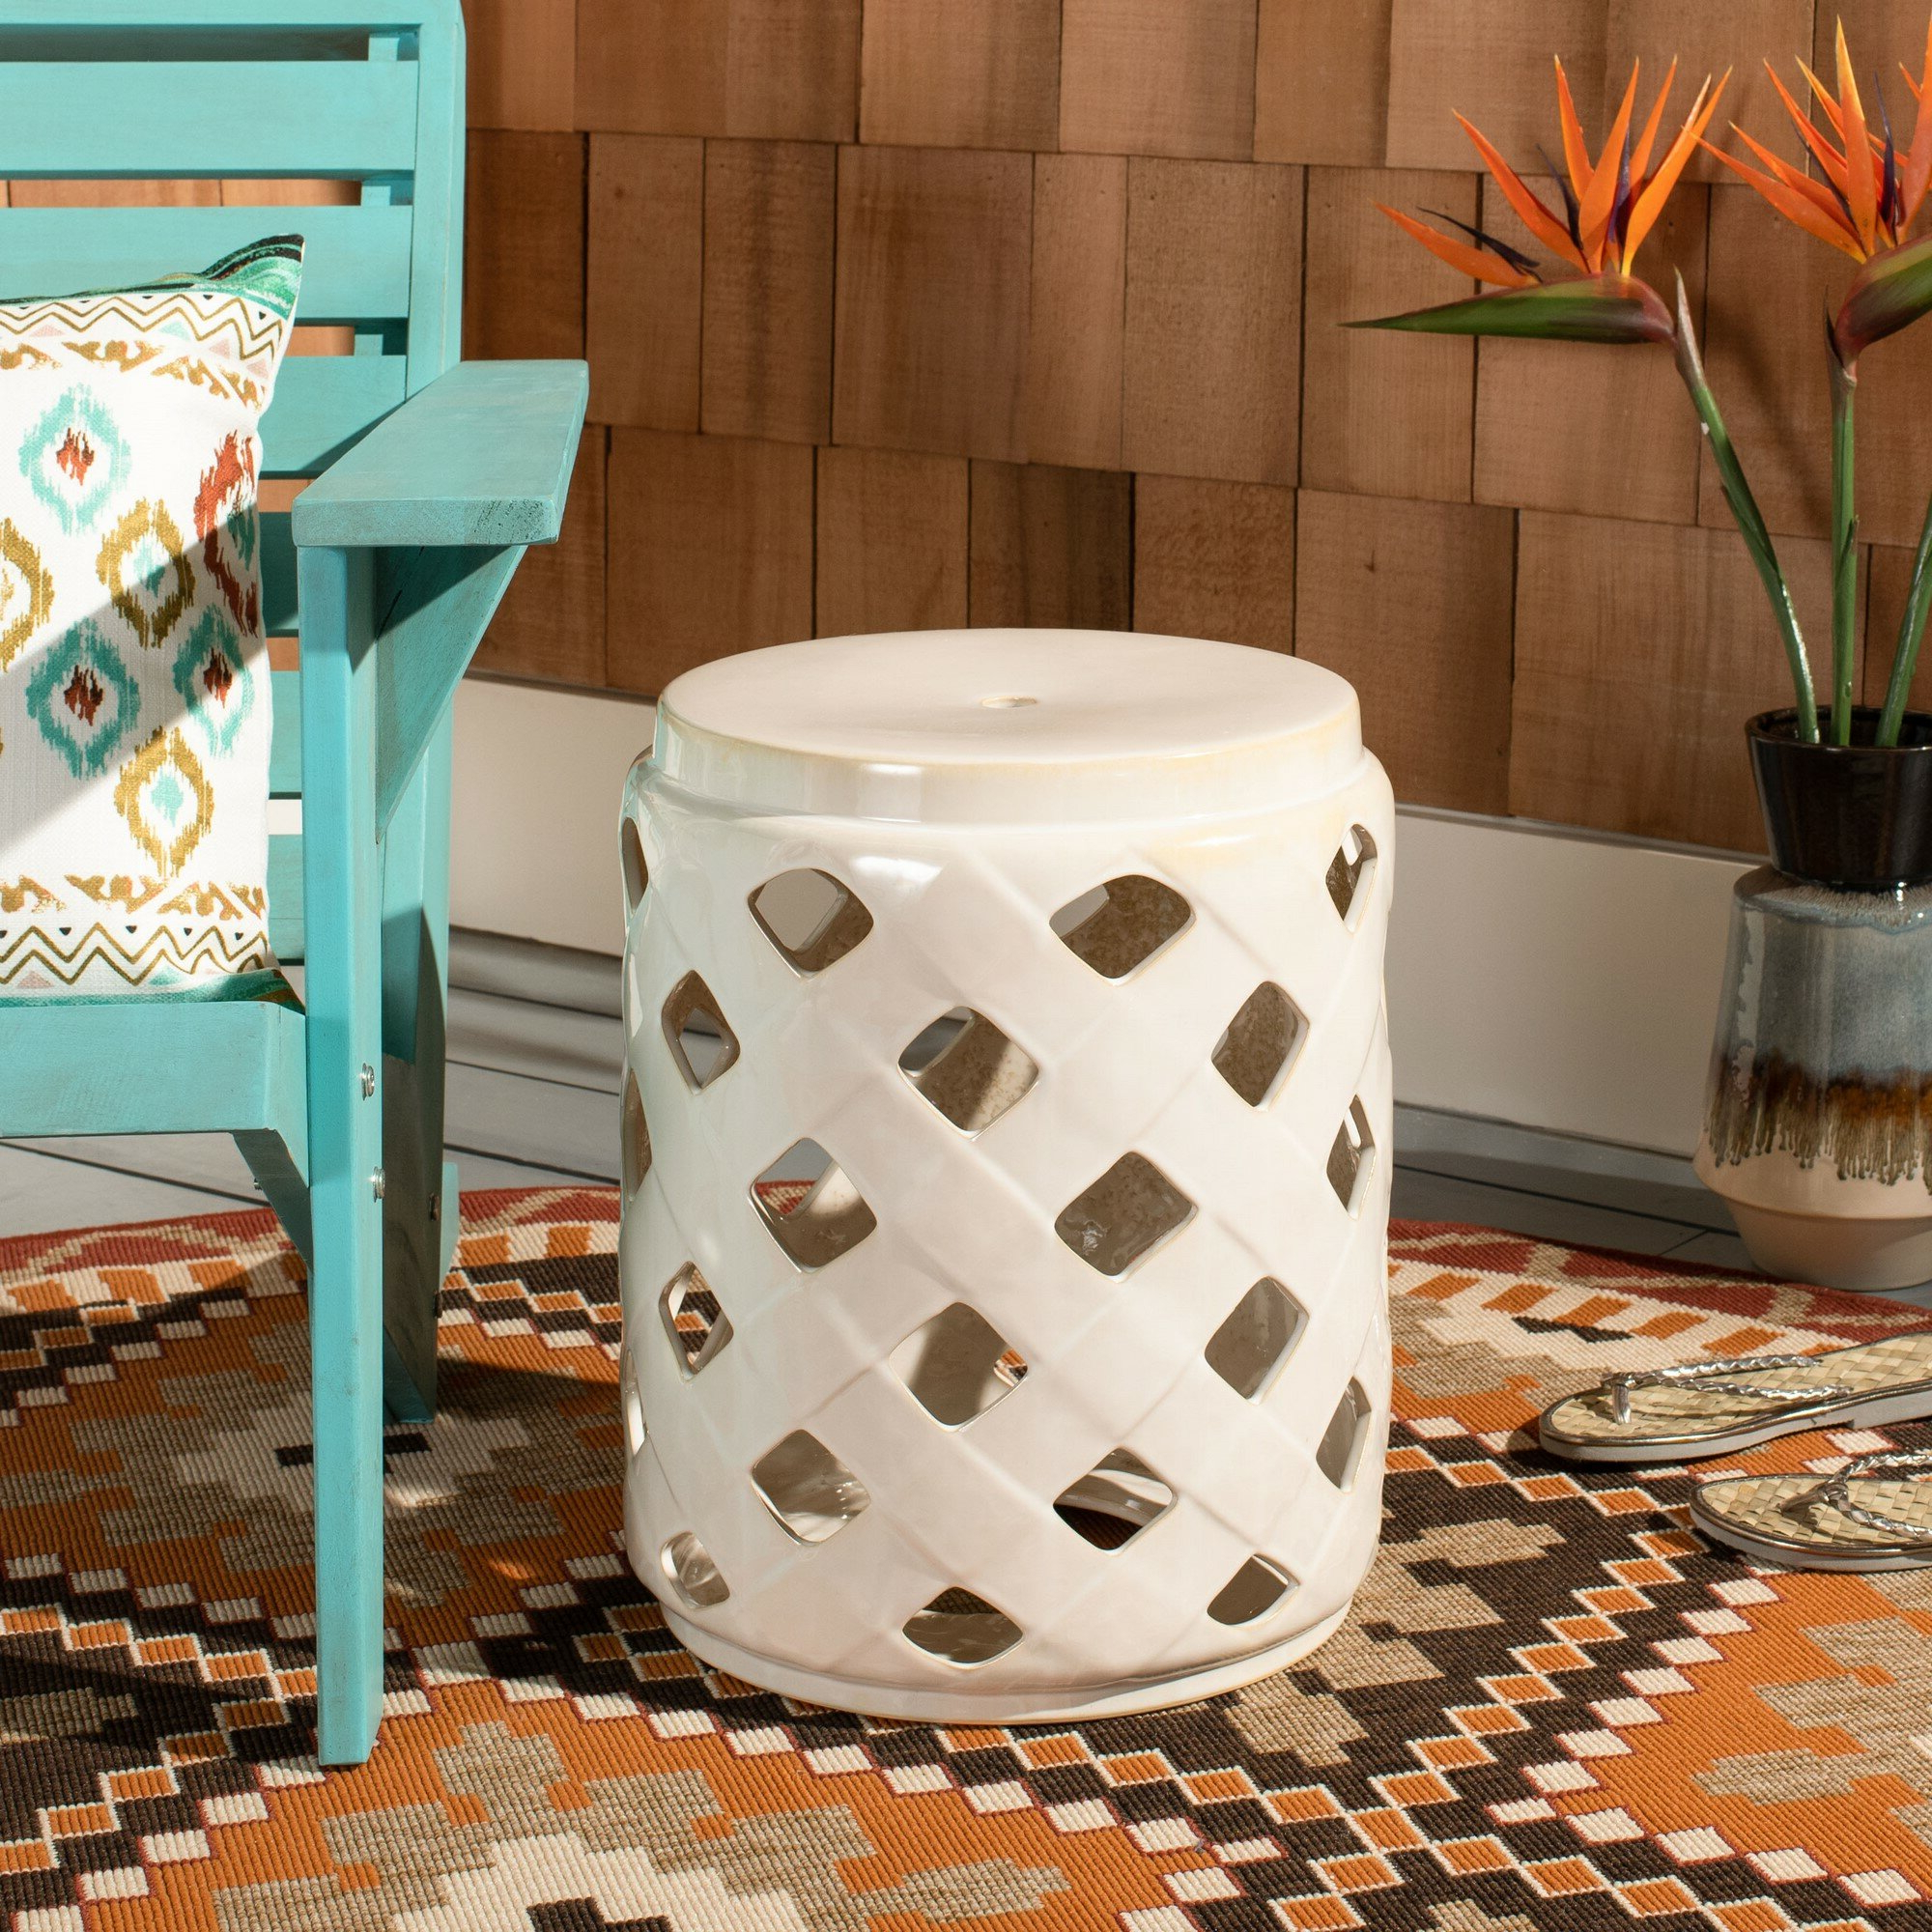 Engelhardt Ceramic Garden Stools Inside Latest Beige Garden Accent Stools You'll Love In (View 17 of 30)